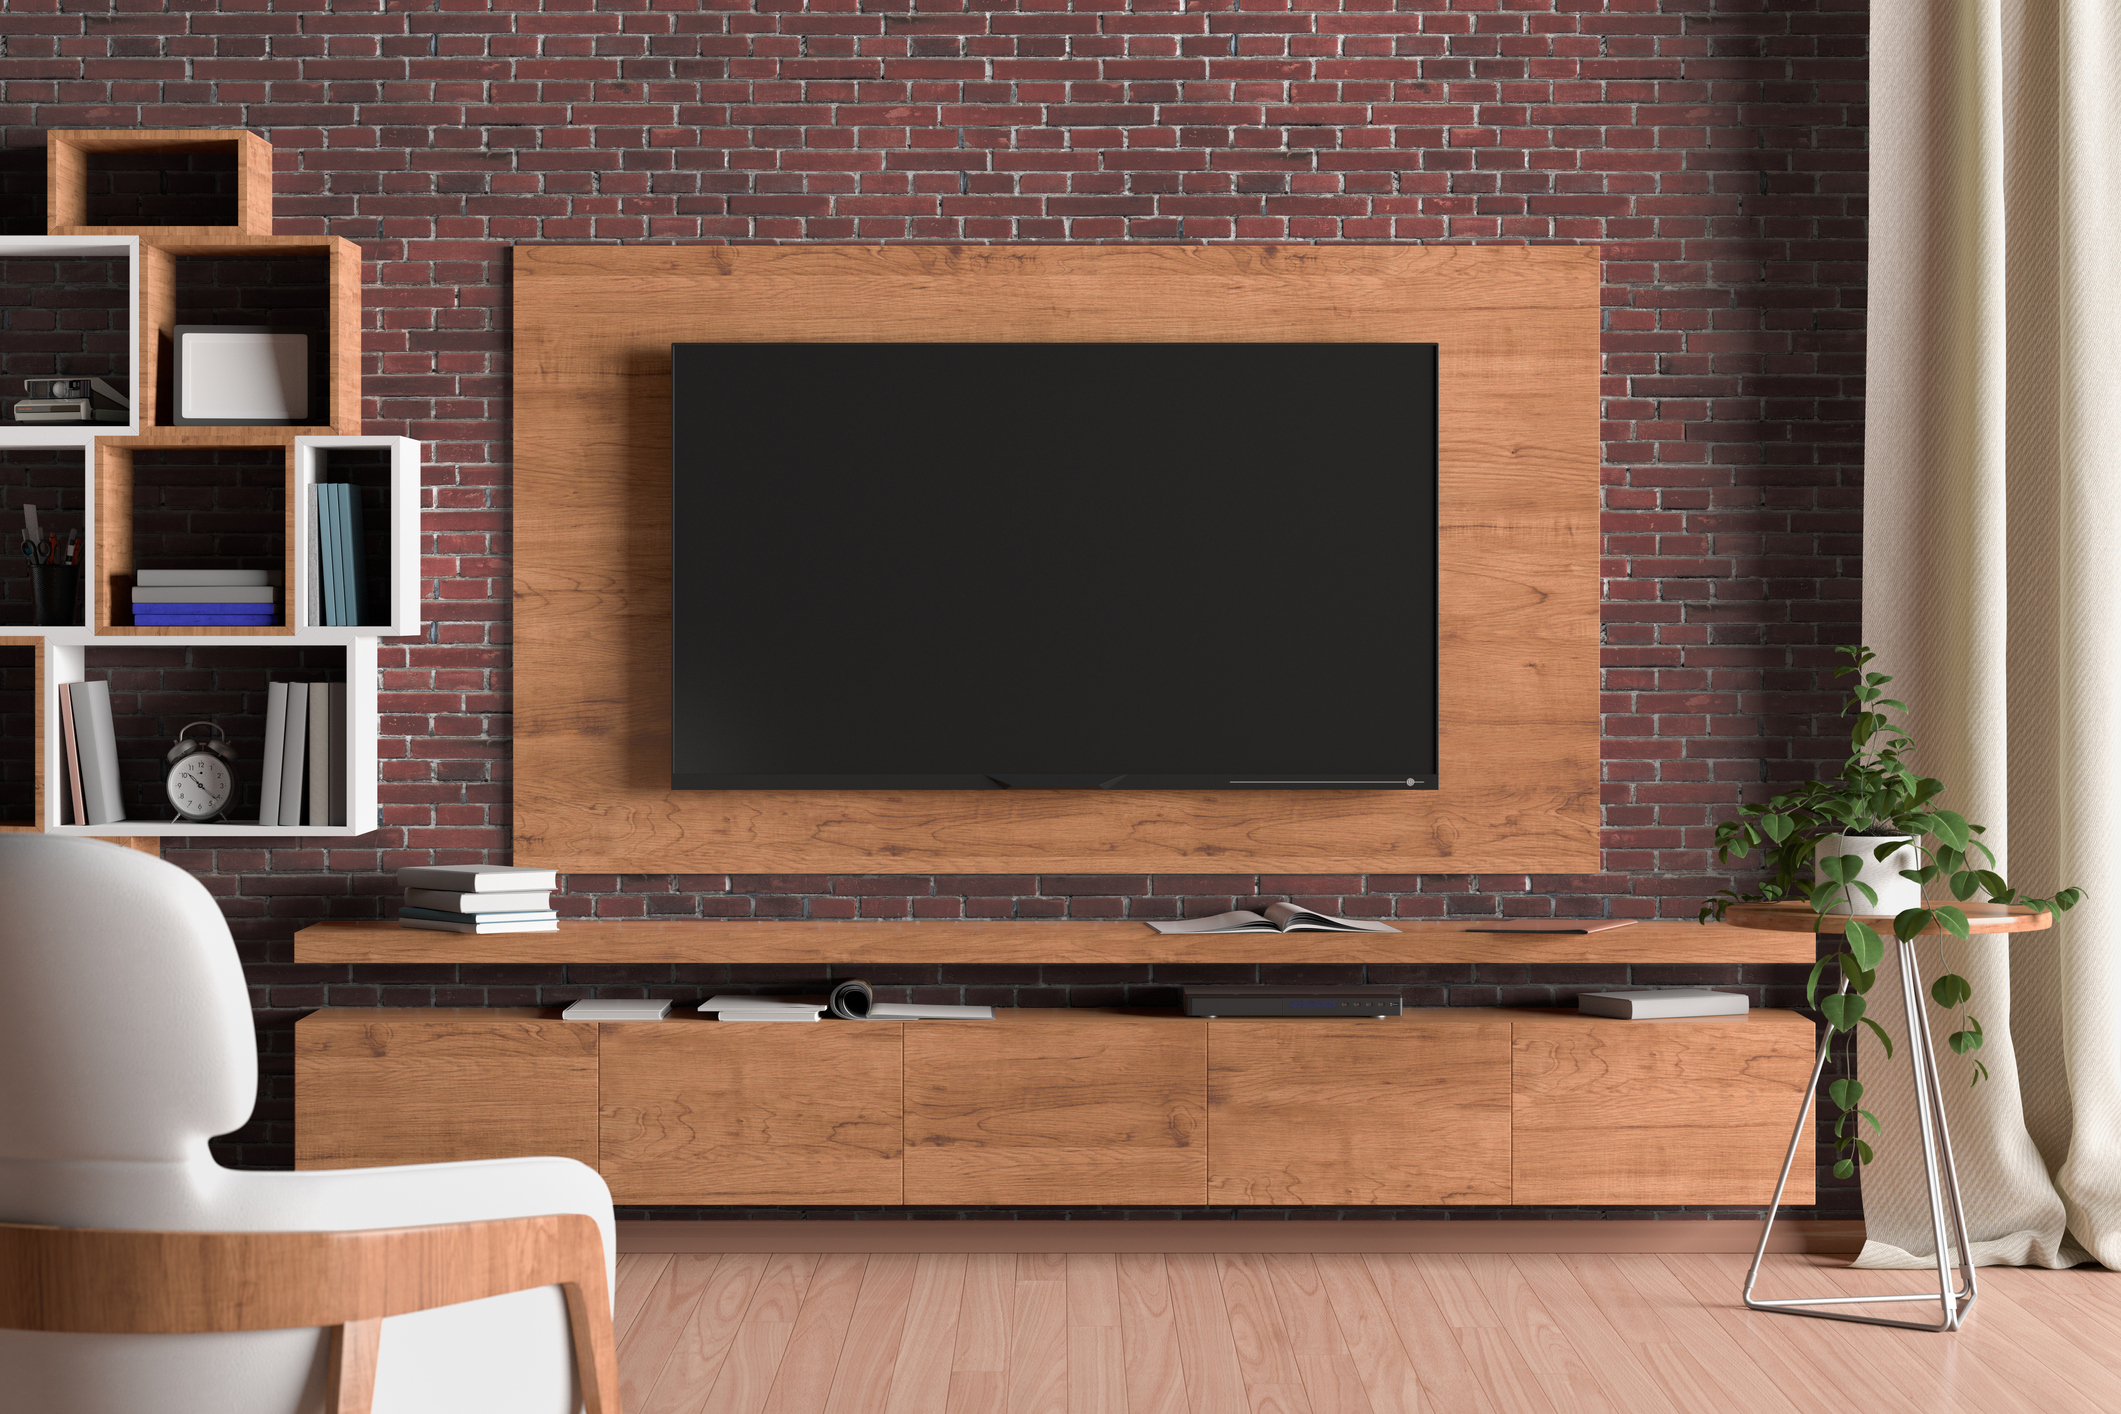 TV screen on the wall with wooden plate above the cabinet in modern living room with brick wall, armchair, bookshelf, curtain, plant. 3d illustration